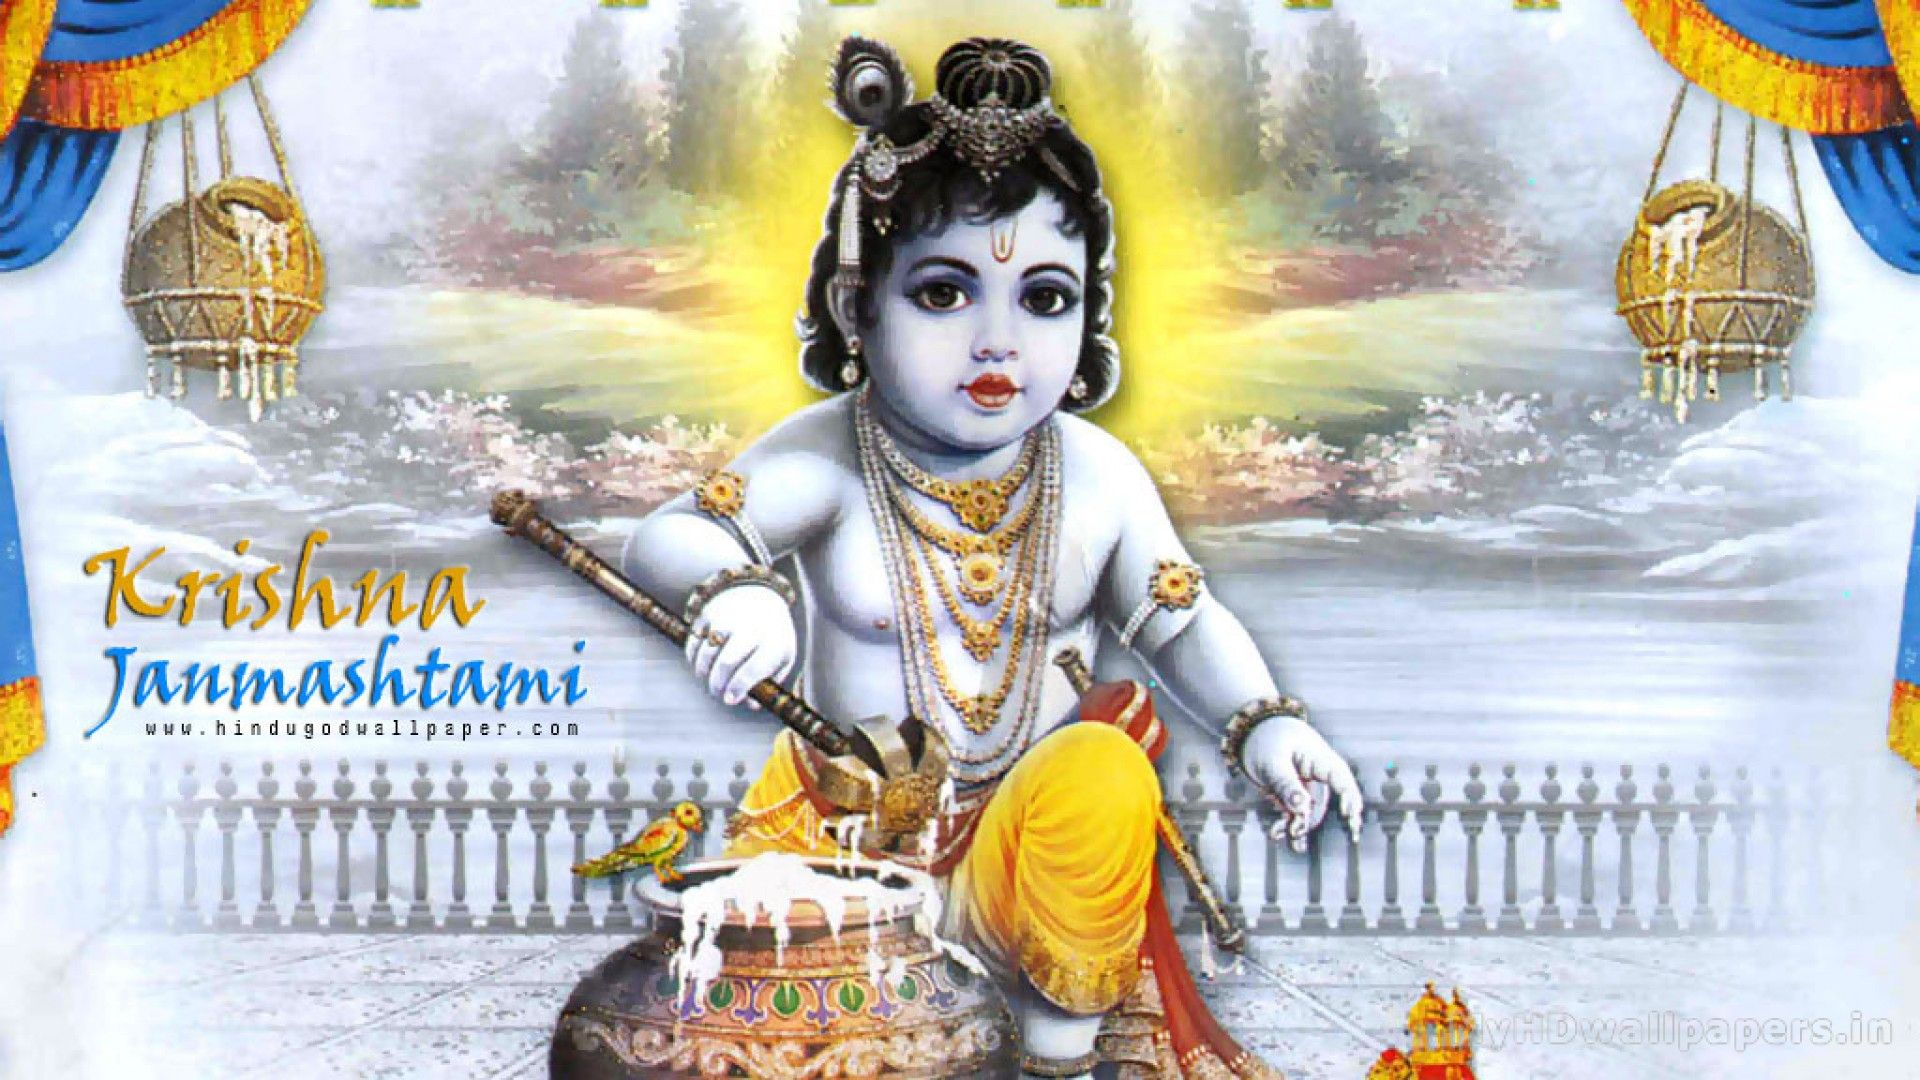 Pin By Hd Wallpapers On Hd Wallpapers Janmashtami